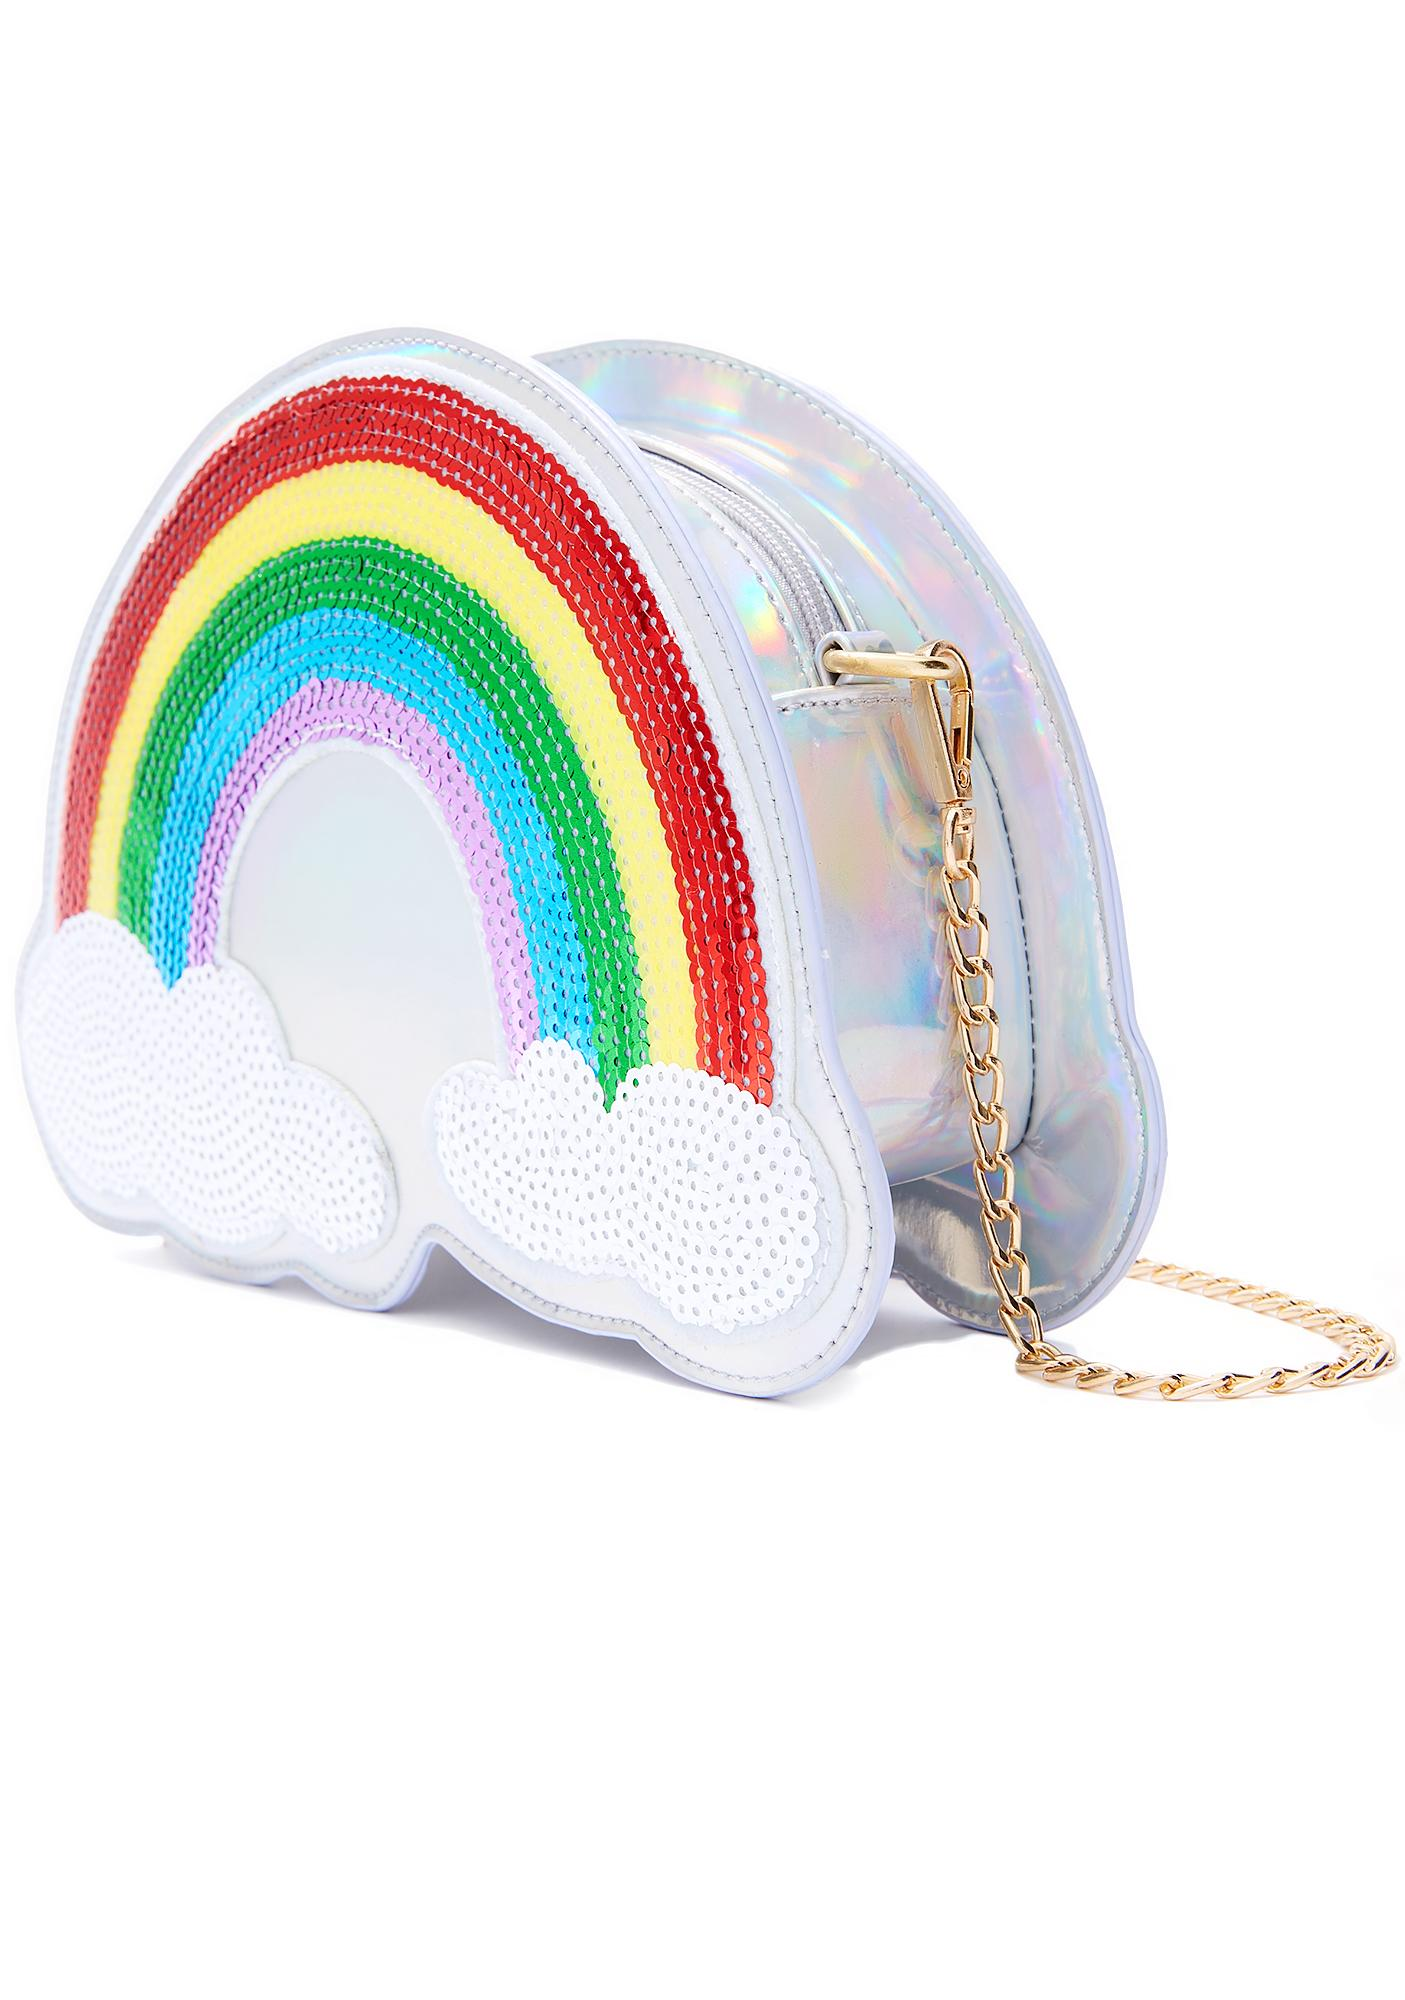 Rebel Rainbow Purse